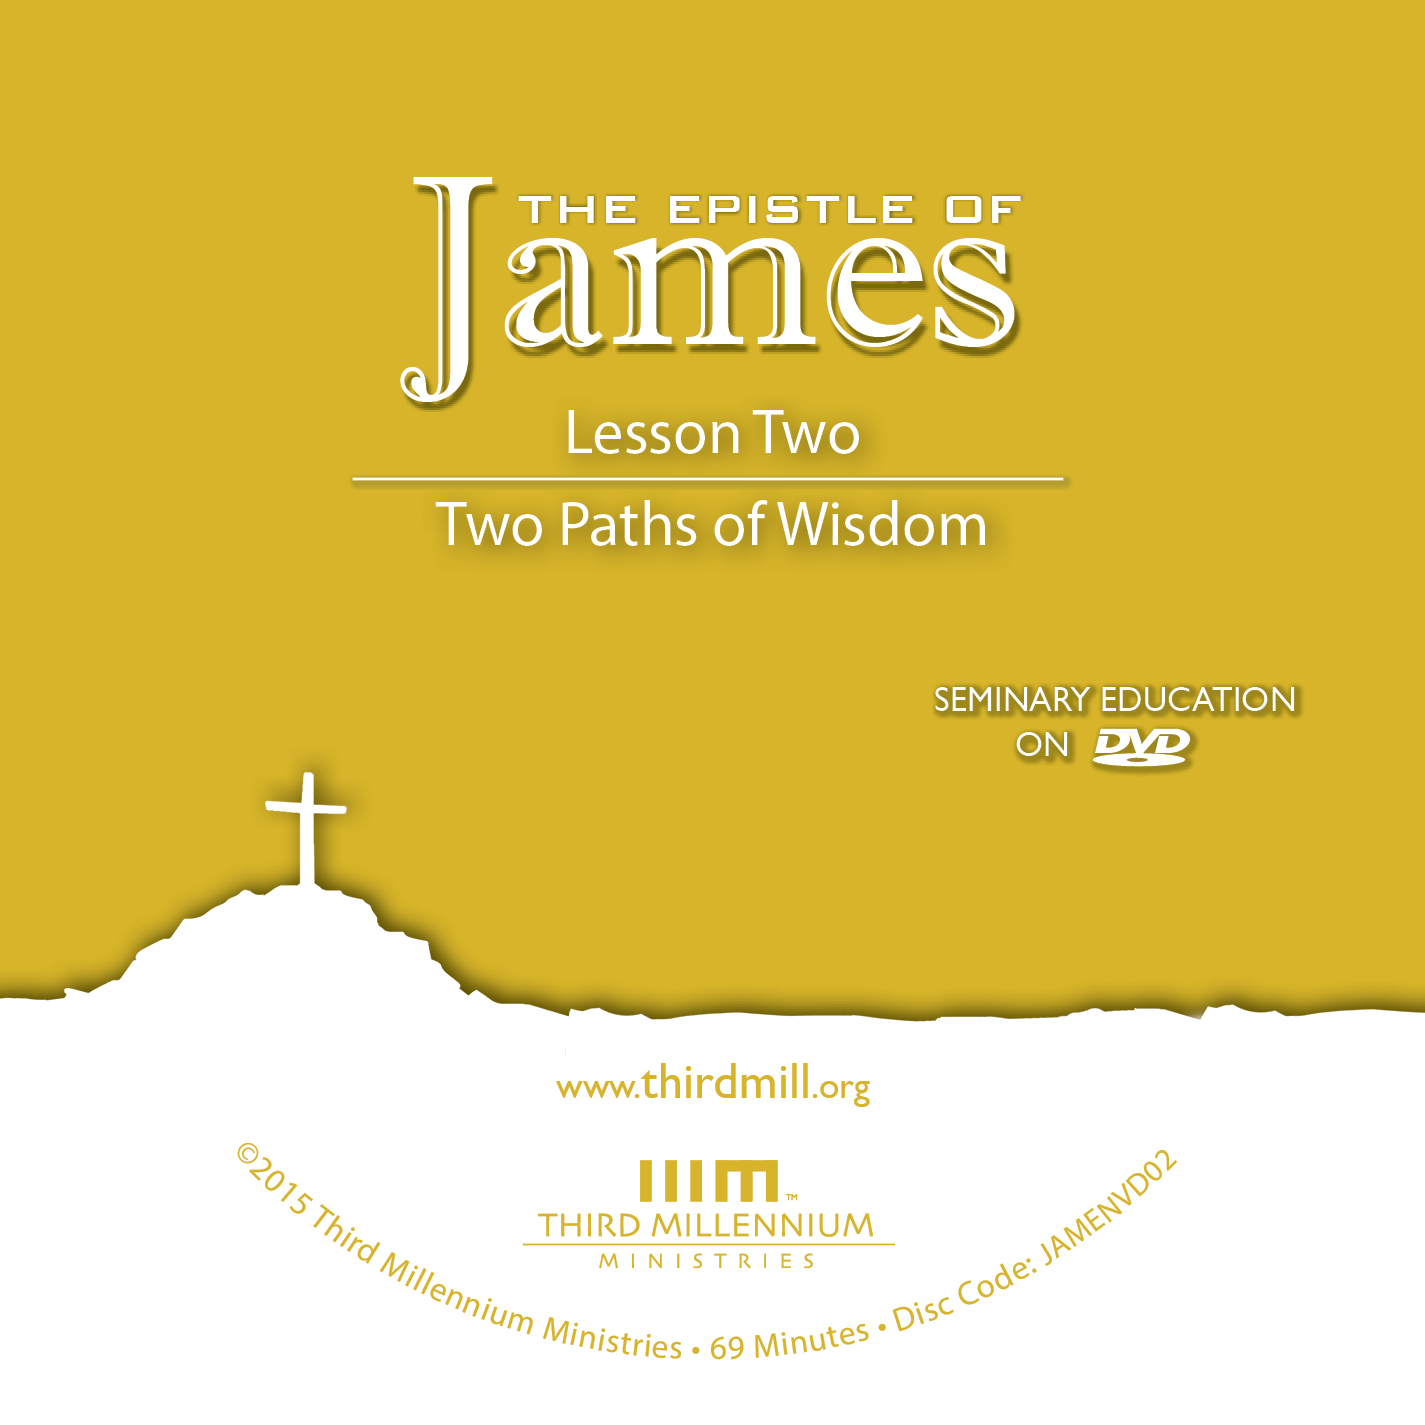 Video Series: The Epistle of James